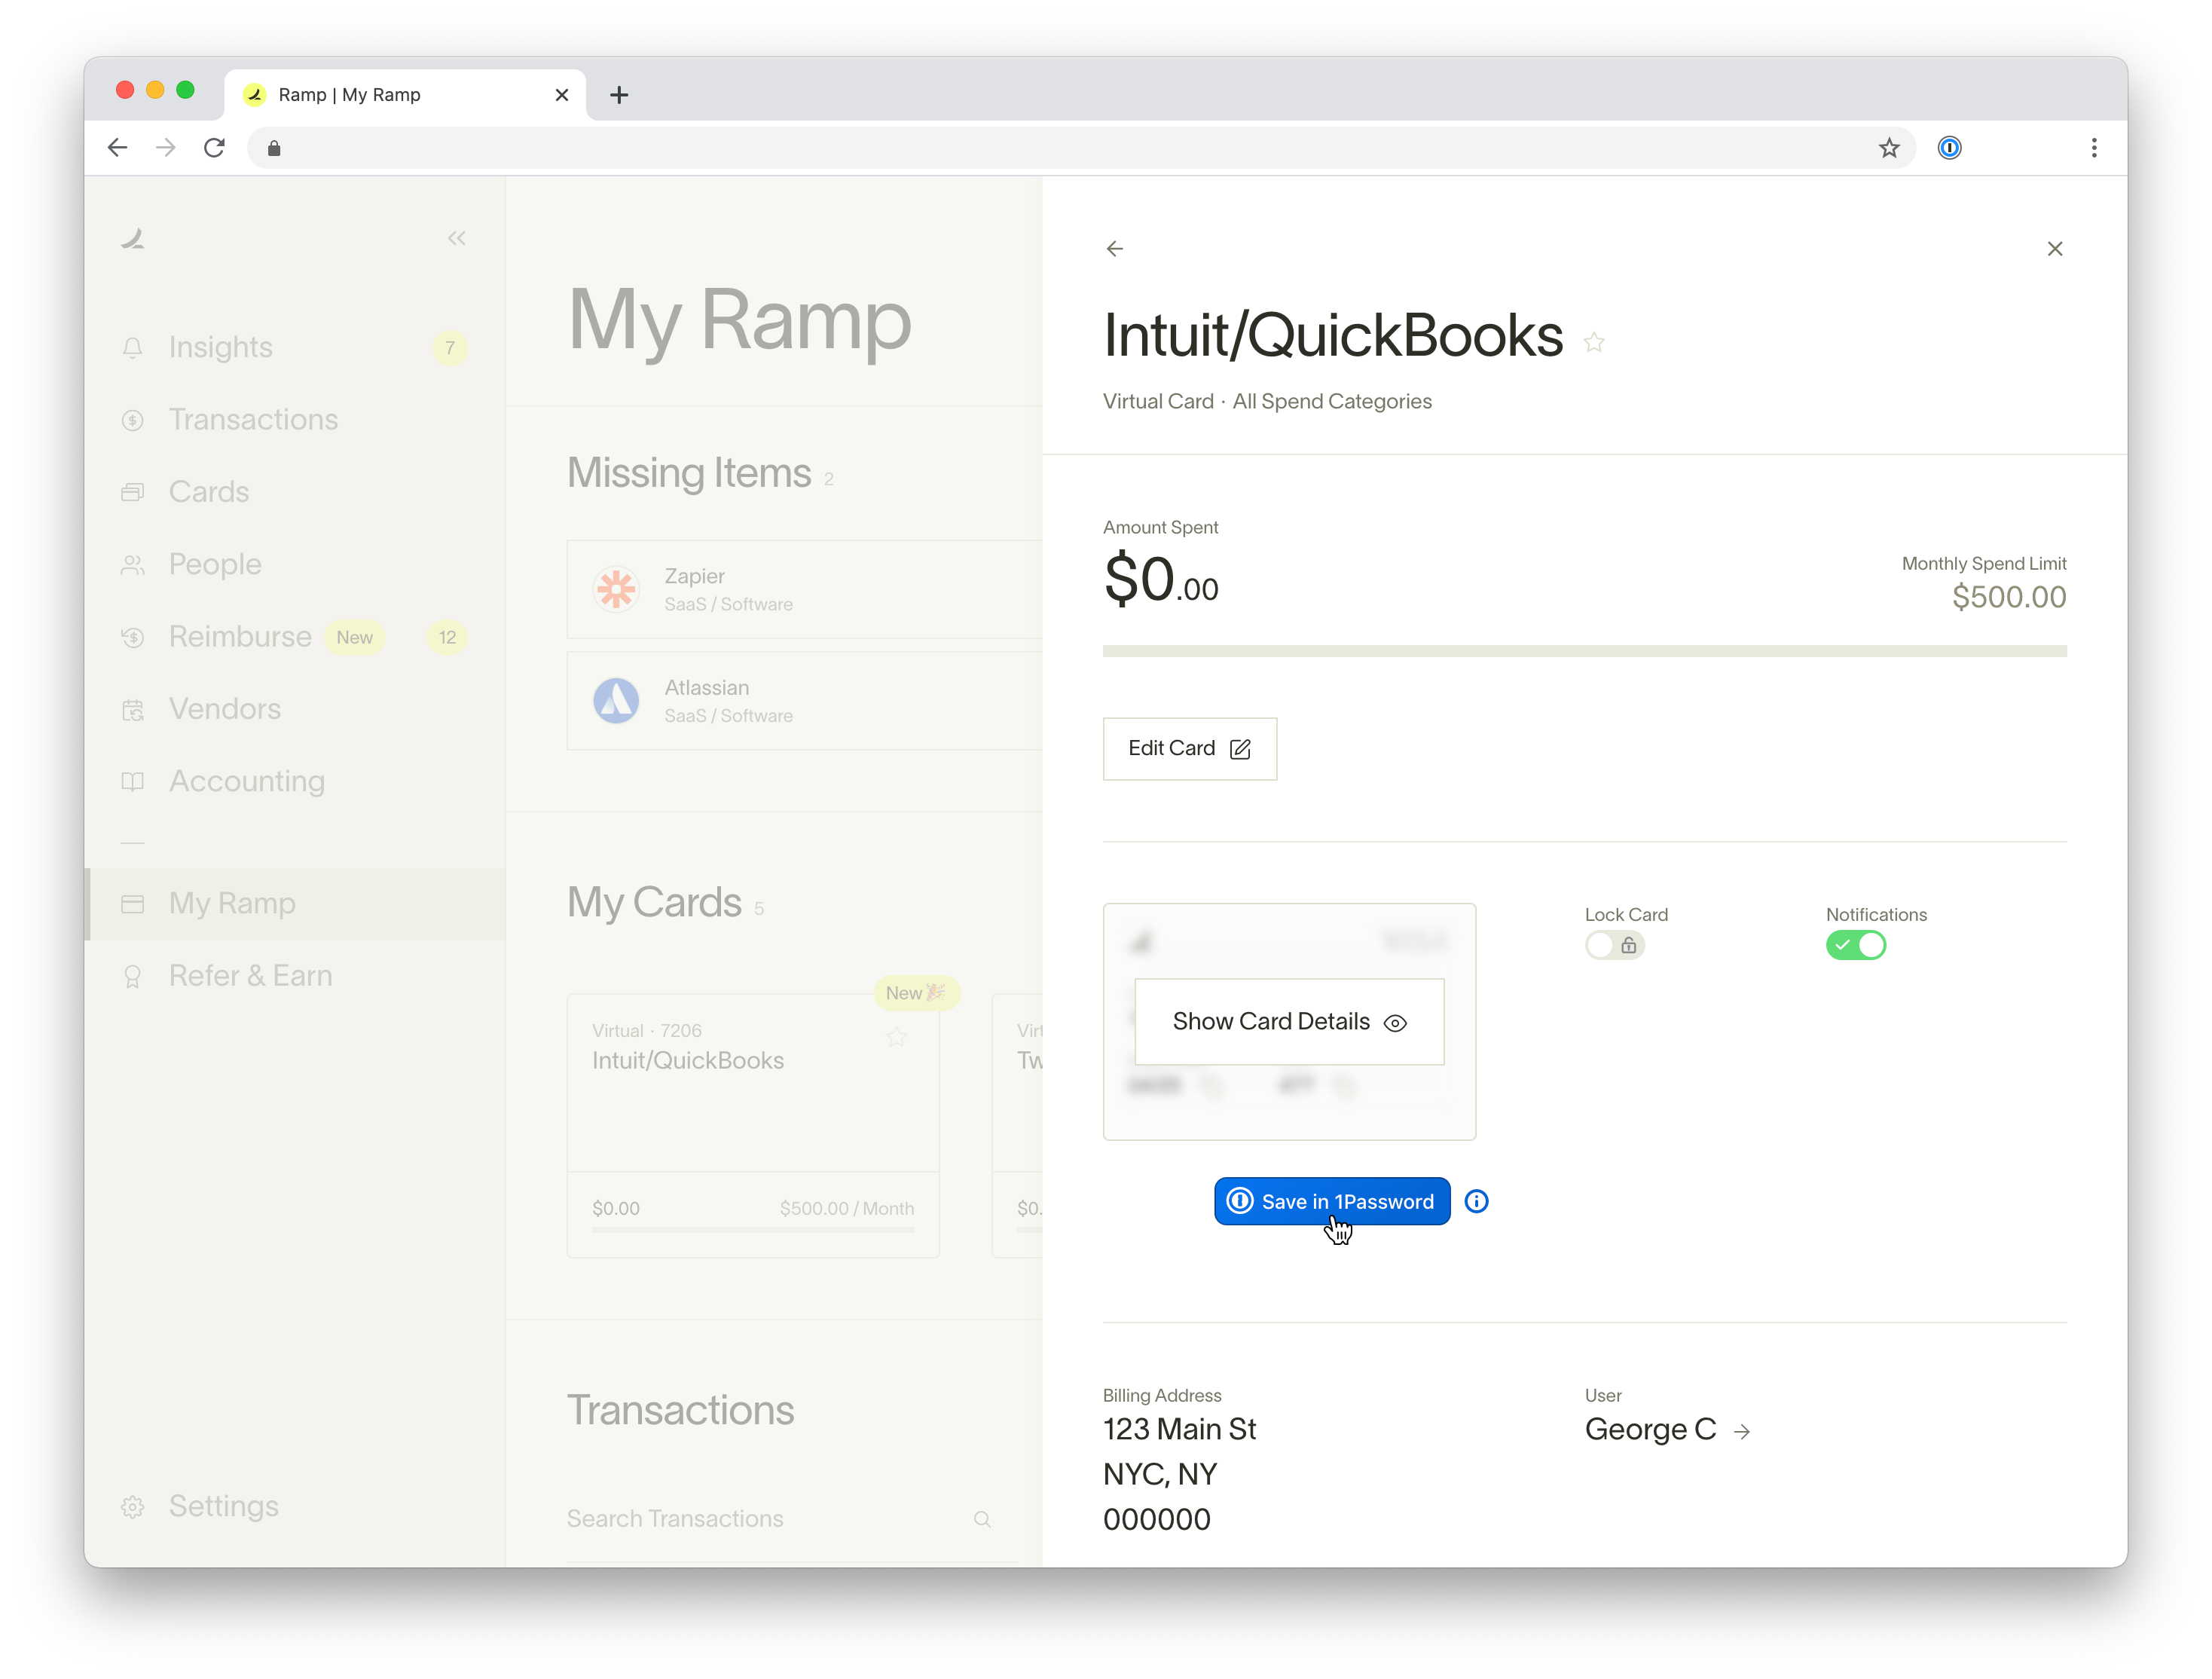 Screenshot showing the the ramp dashboard with a virtual card for intuit quickbooks. The Save in 1Password button appears under the card.